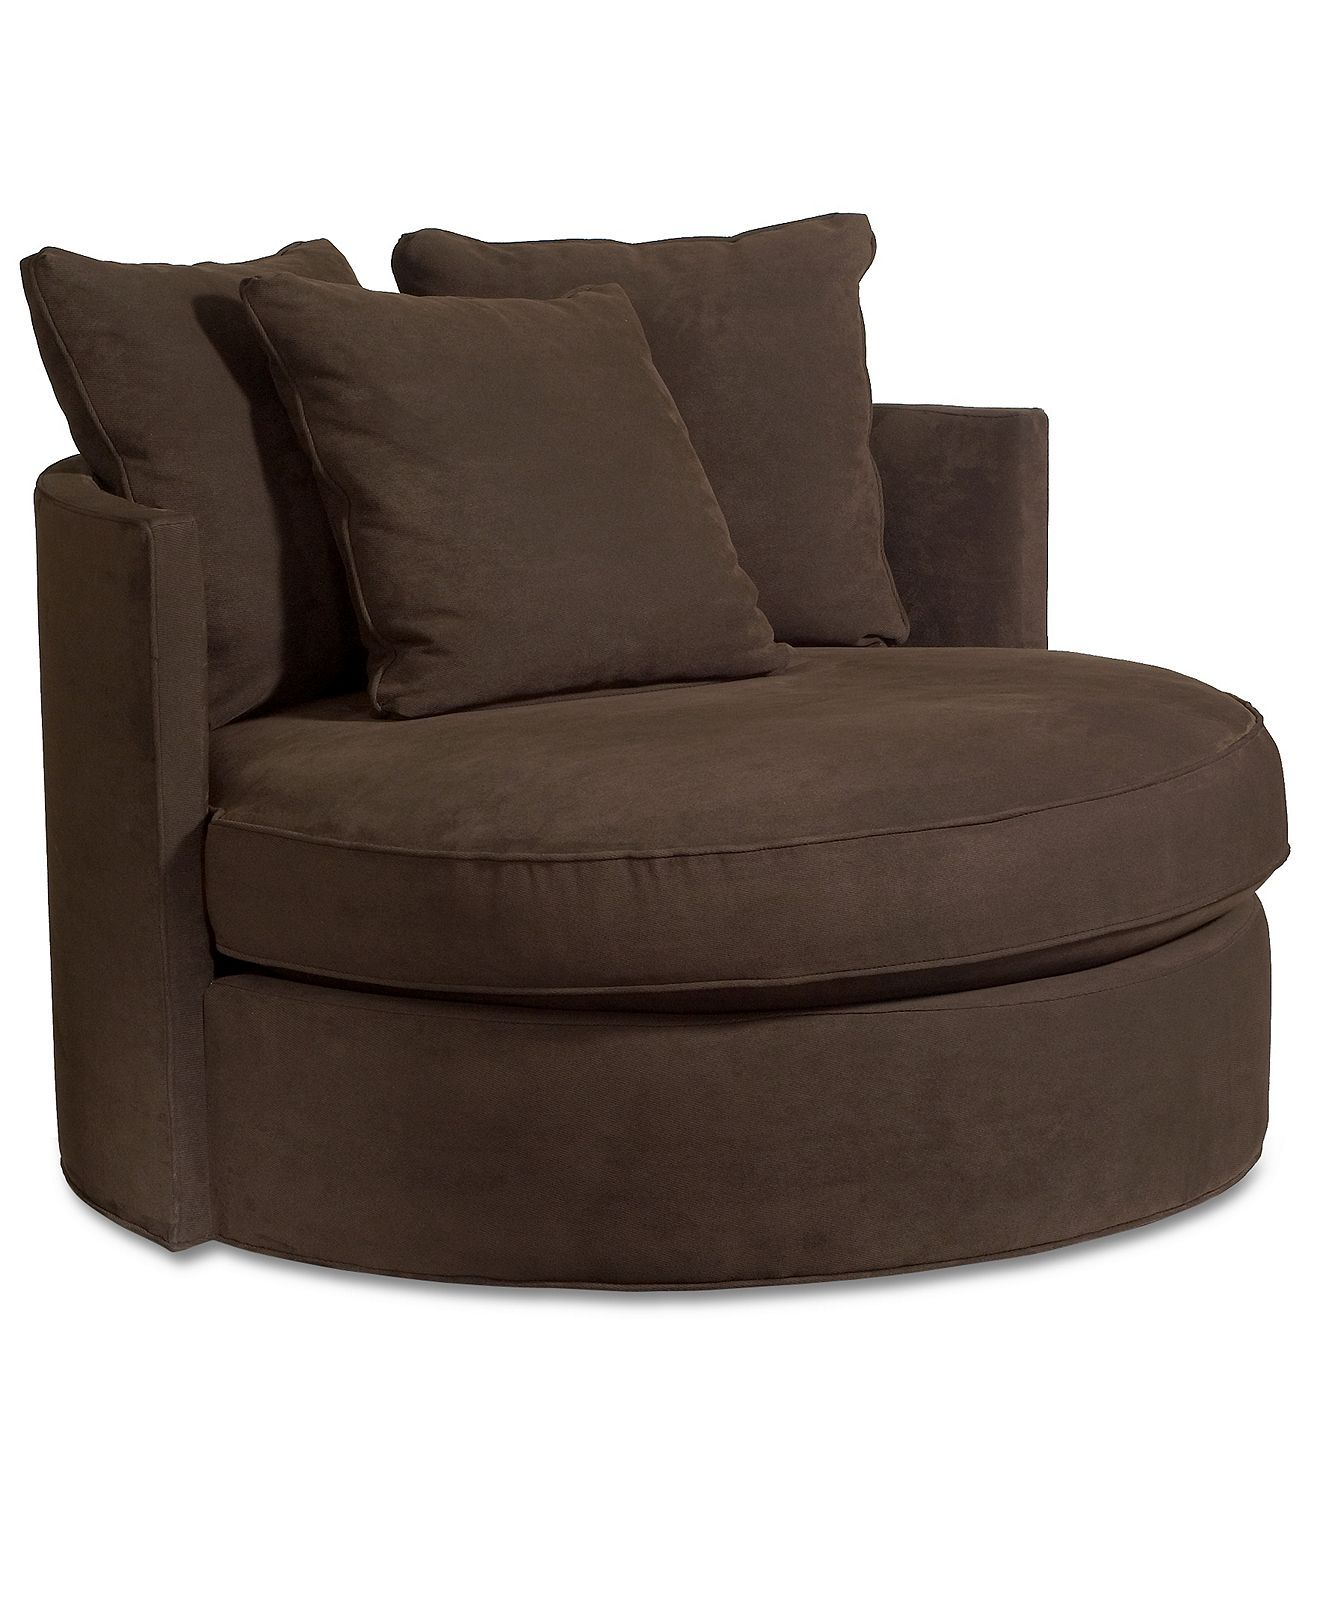 Circle Swivel Chair Doss Godiva Fabric Microfiber Round Swivel Living Room